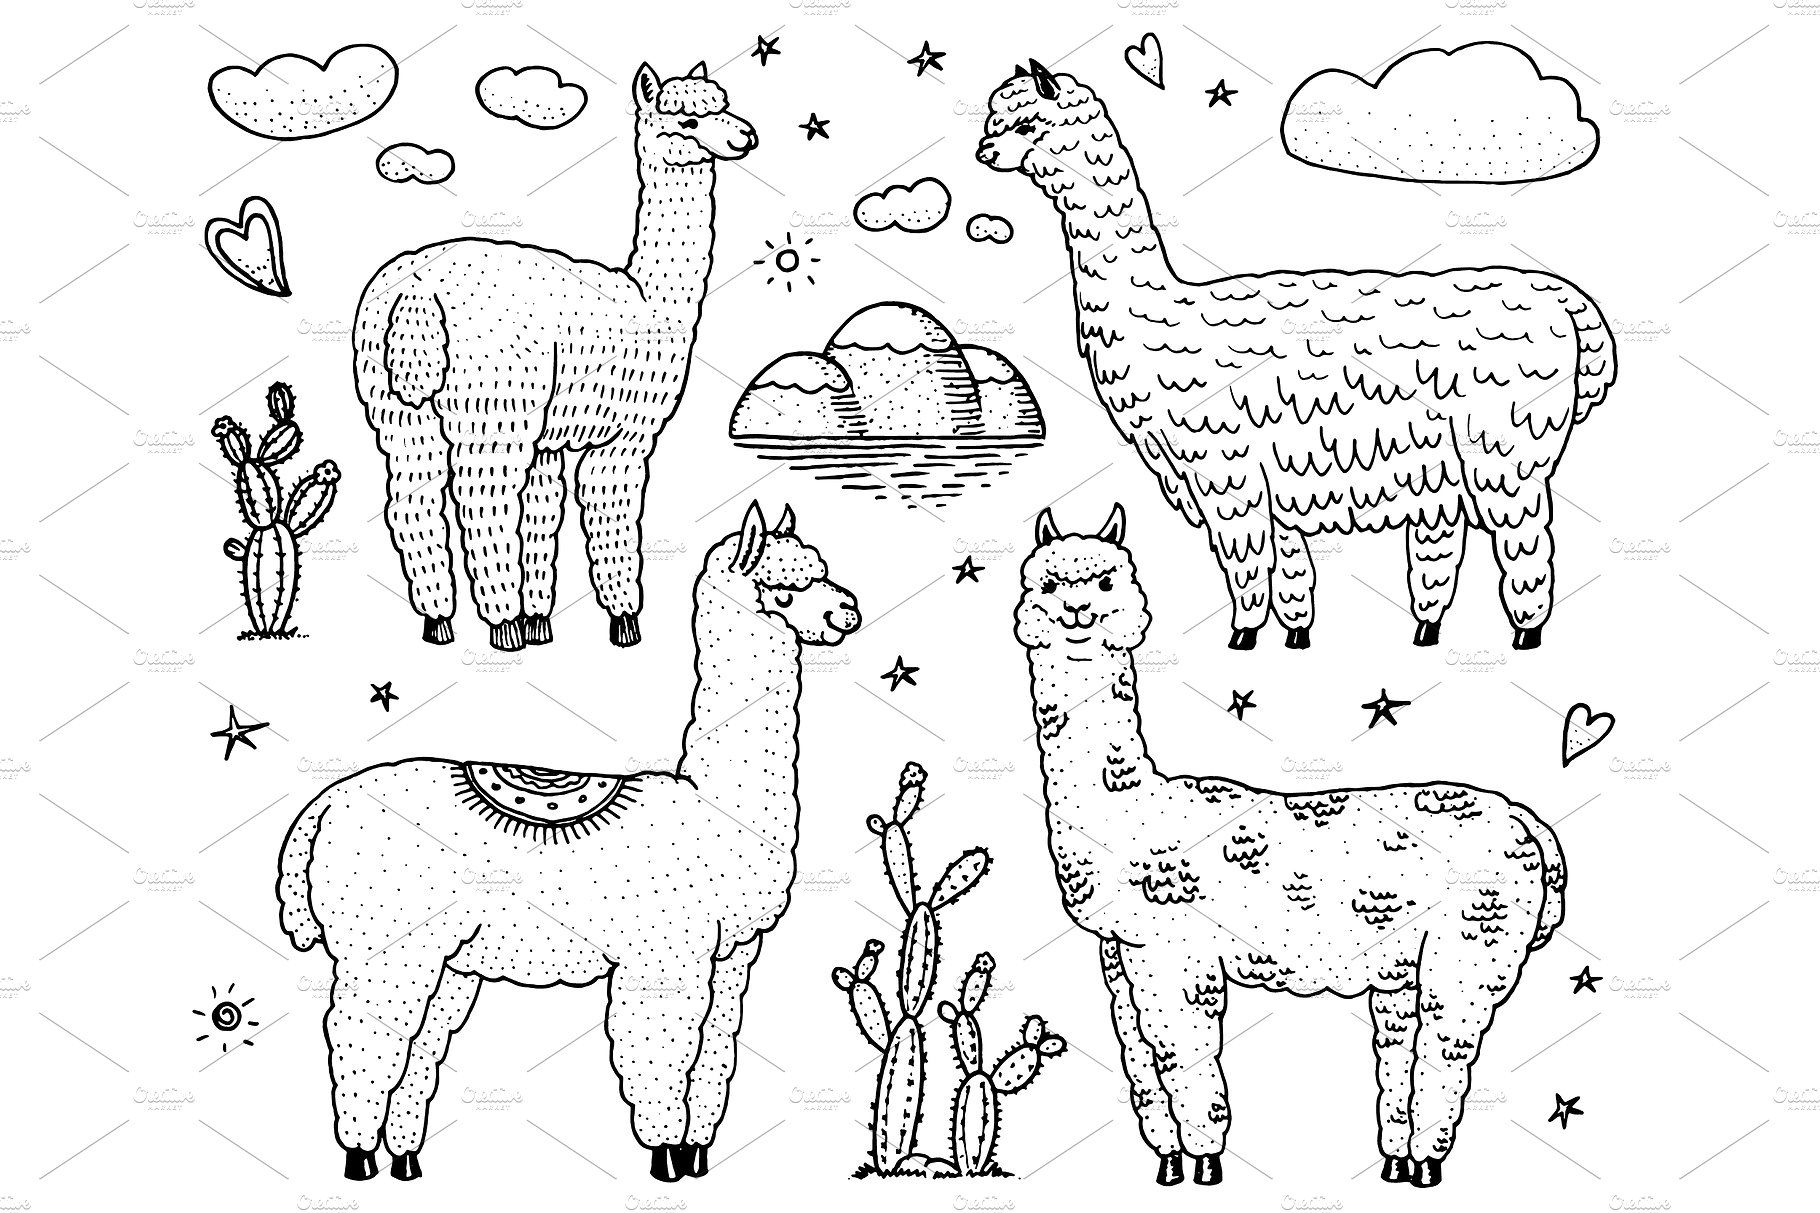 Set Of Cute Alpaca Llamas Or Wild Guanaco On The Background Of Cactus And Mountain Funny Smiling Animals In Peru For Cards Posters Invitations T Shirts Han Cute Alpaca Alpaca Drawing How